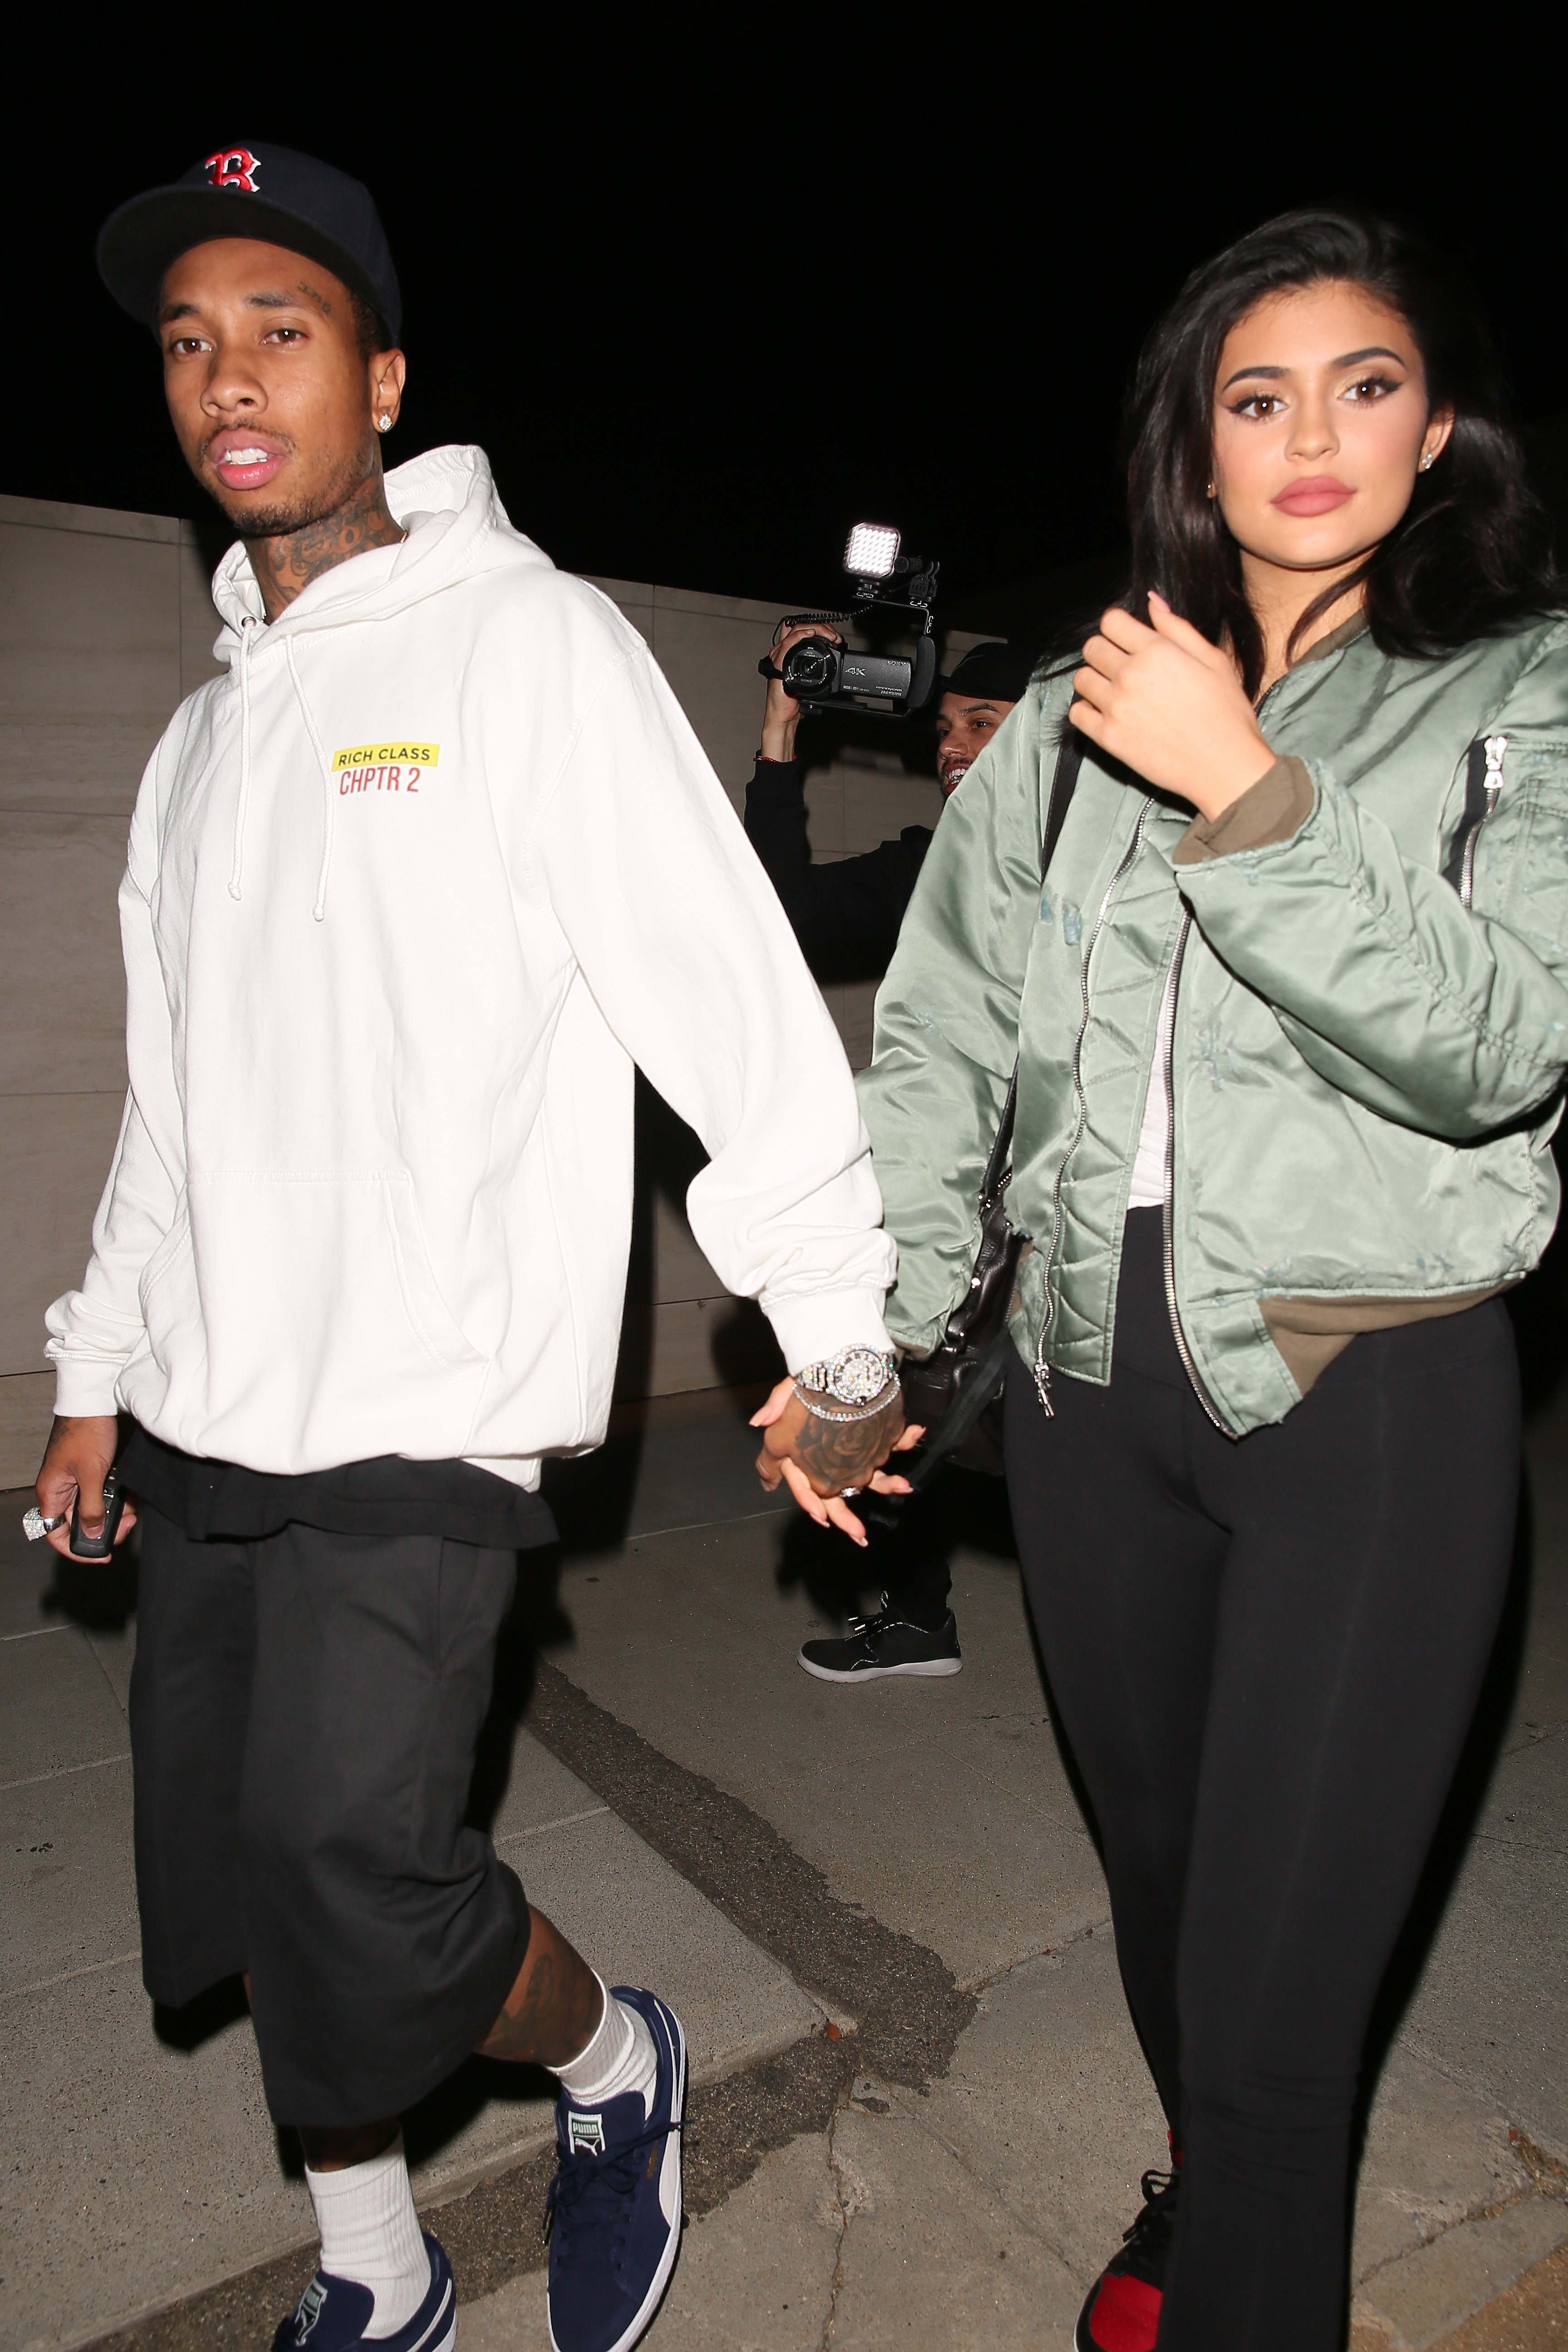 Kylie Jenner and Tyga celebrate his birthday with guns